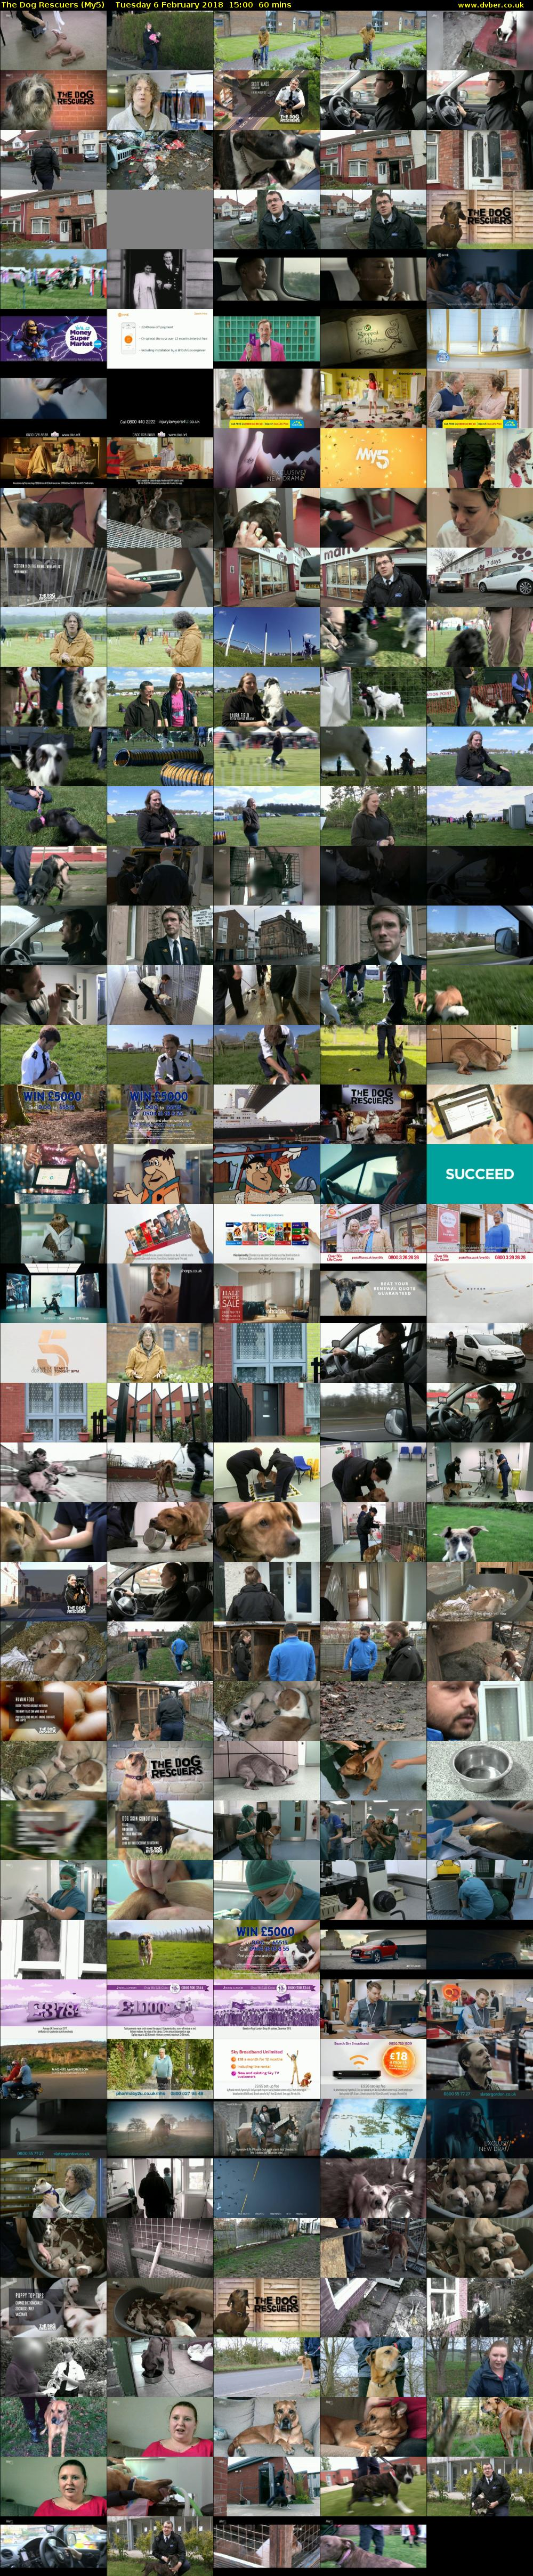 The Dog Rescuers (My5) Tuesday 6 February 2018 15:00 - 16:00